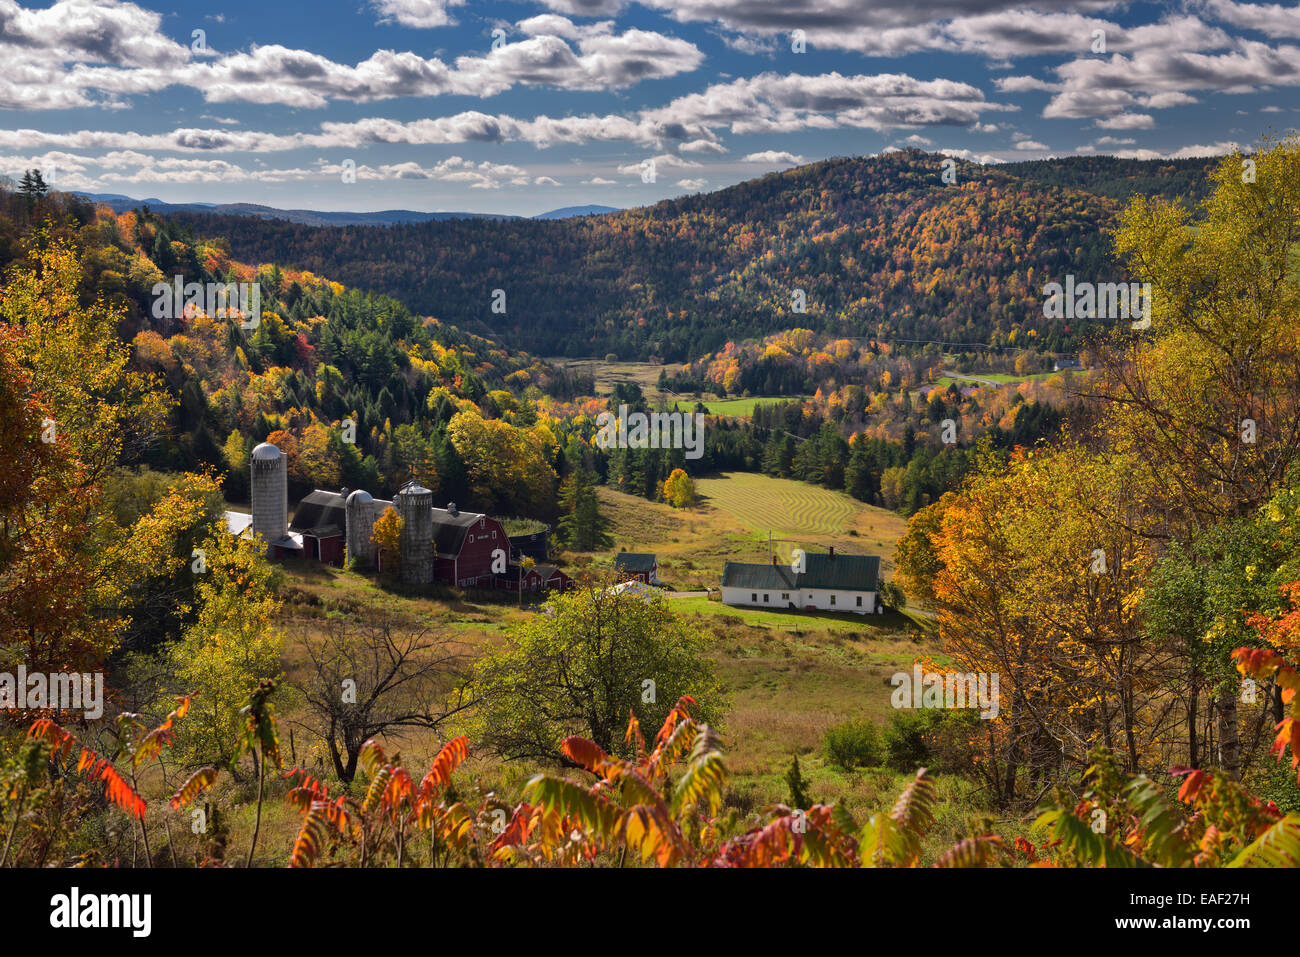 Hillside Acres farm valley fields Barnet Center Vermont USA with trees in colorful Fall foliage and clouds over - Stock Image